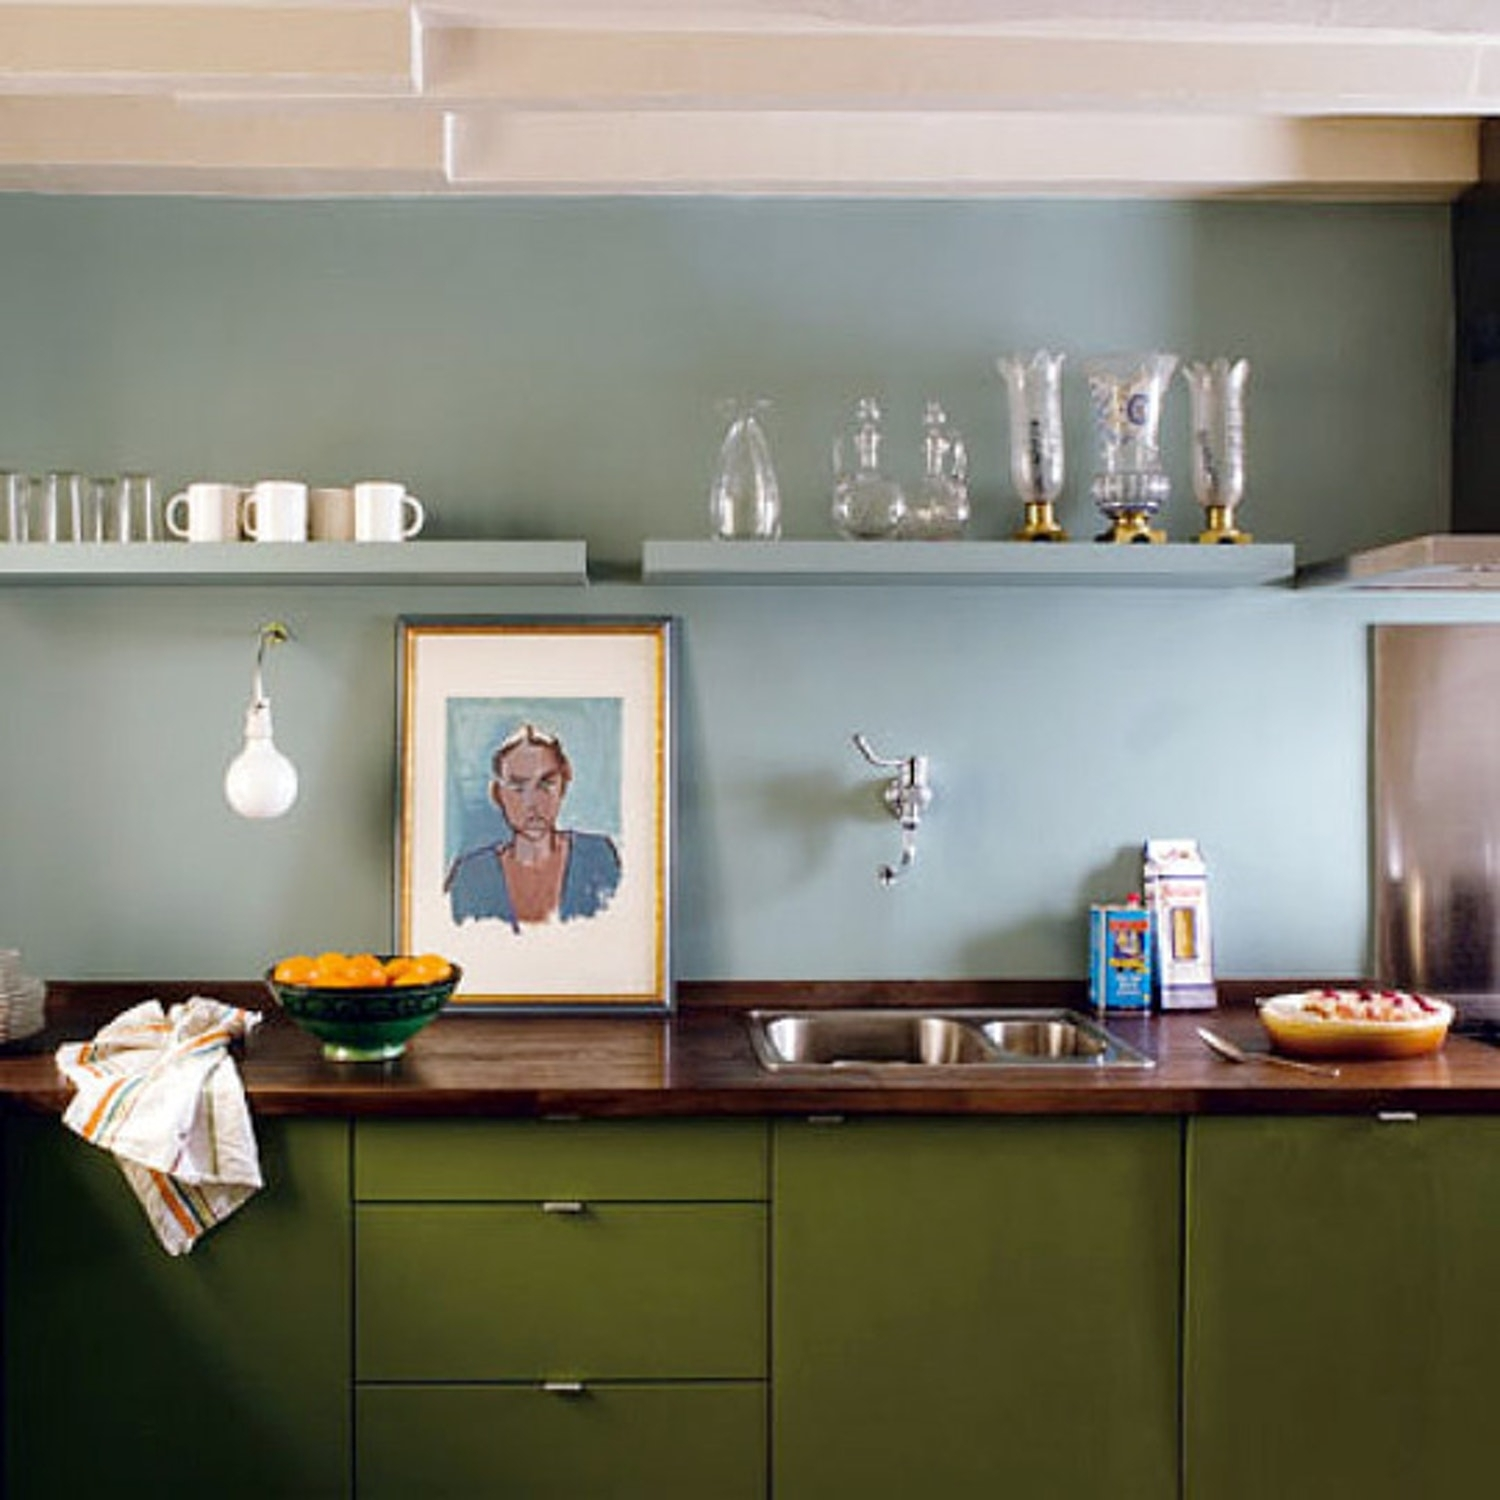 Olive Green Kitchen Decor: Madison Art Center Design